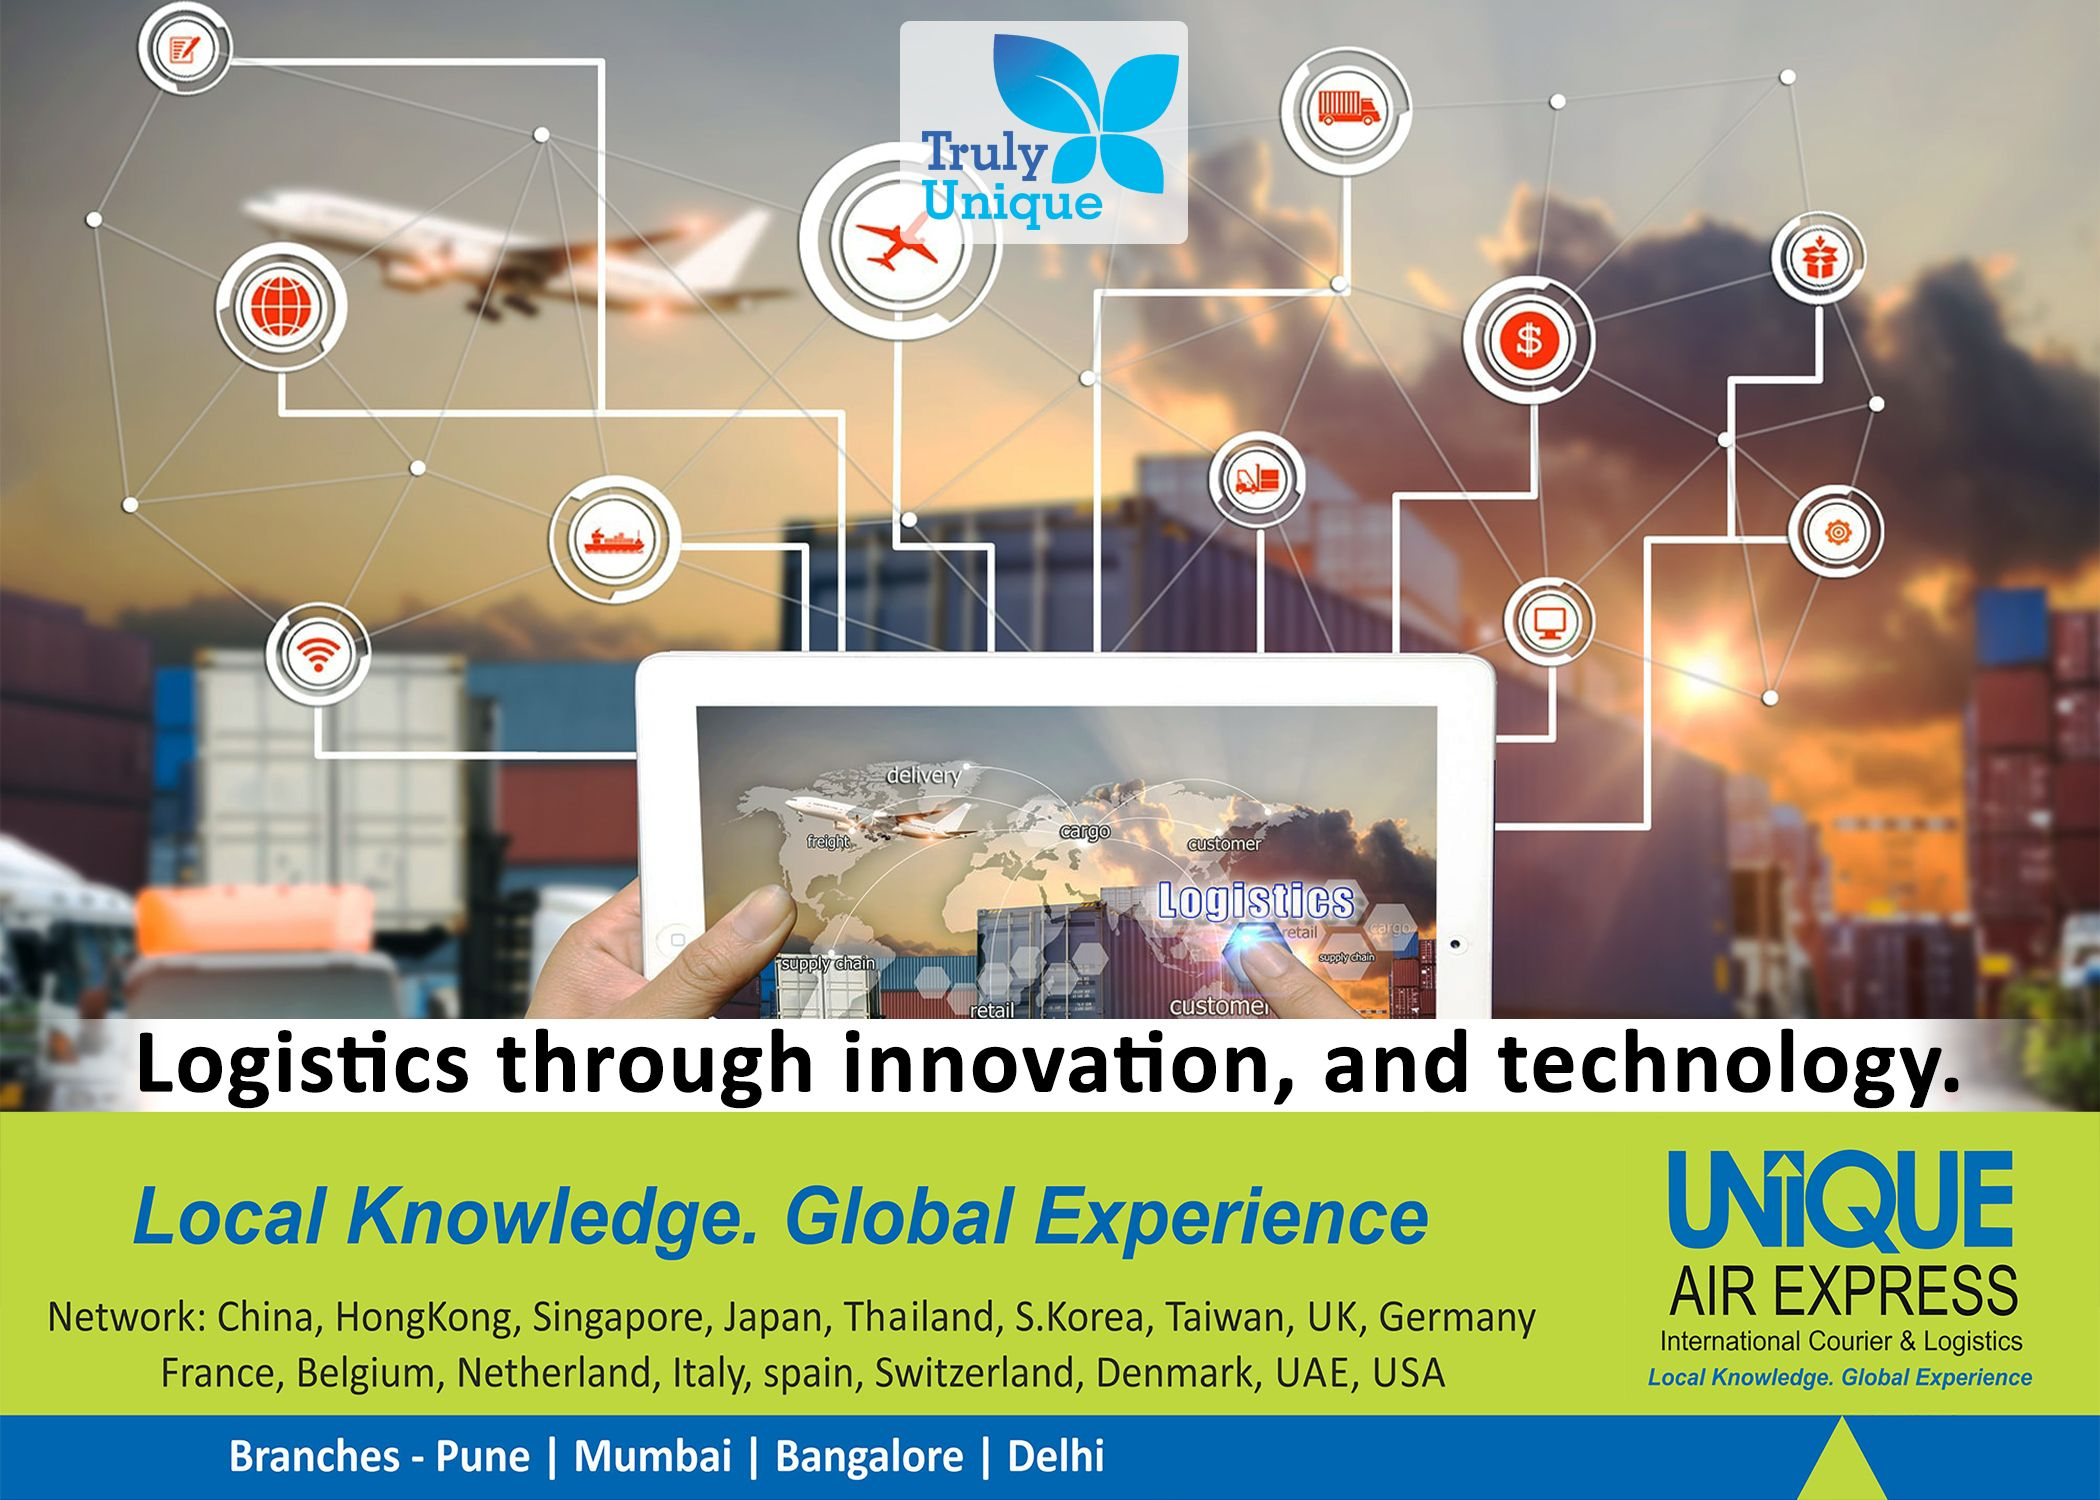 We #Believe in #Logistics through #Innovation and